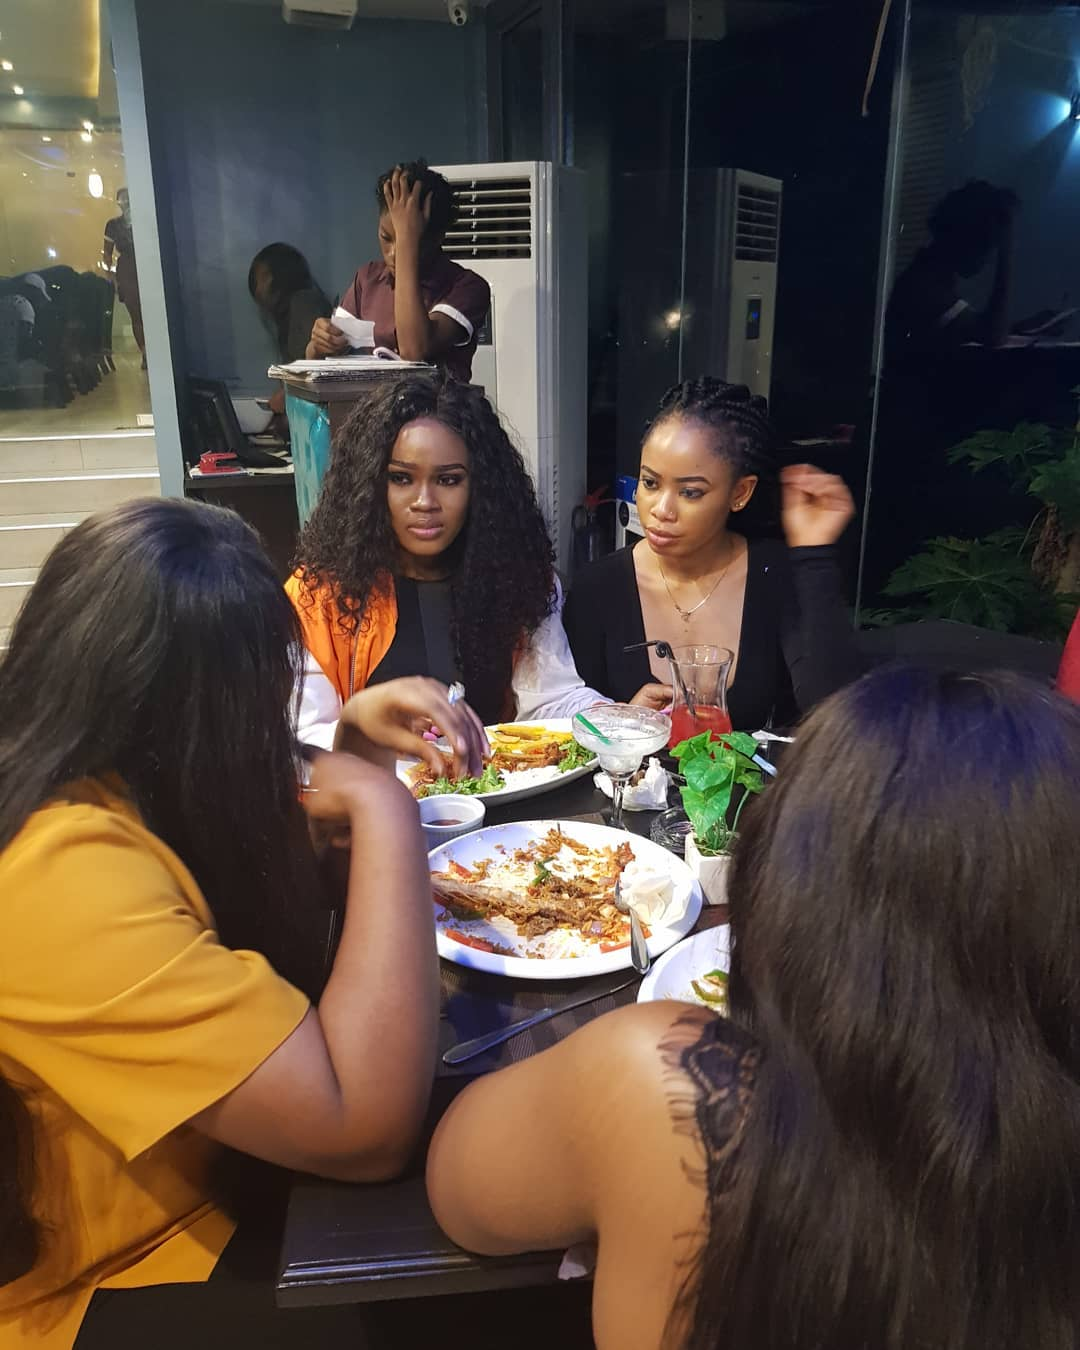 , BBNaija 2018: Payporte hosts BBN finalists – See Photos, Latest Nigeria News, Daily Devotionals & Celebrity Gossips - Chidispalace